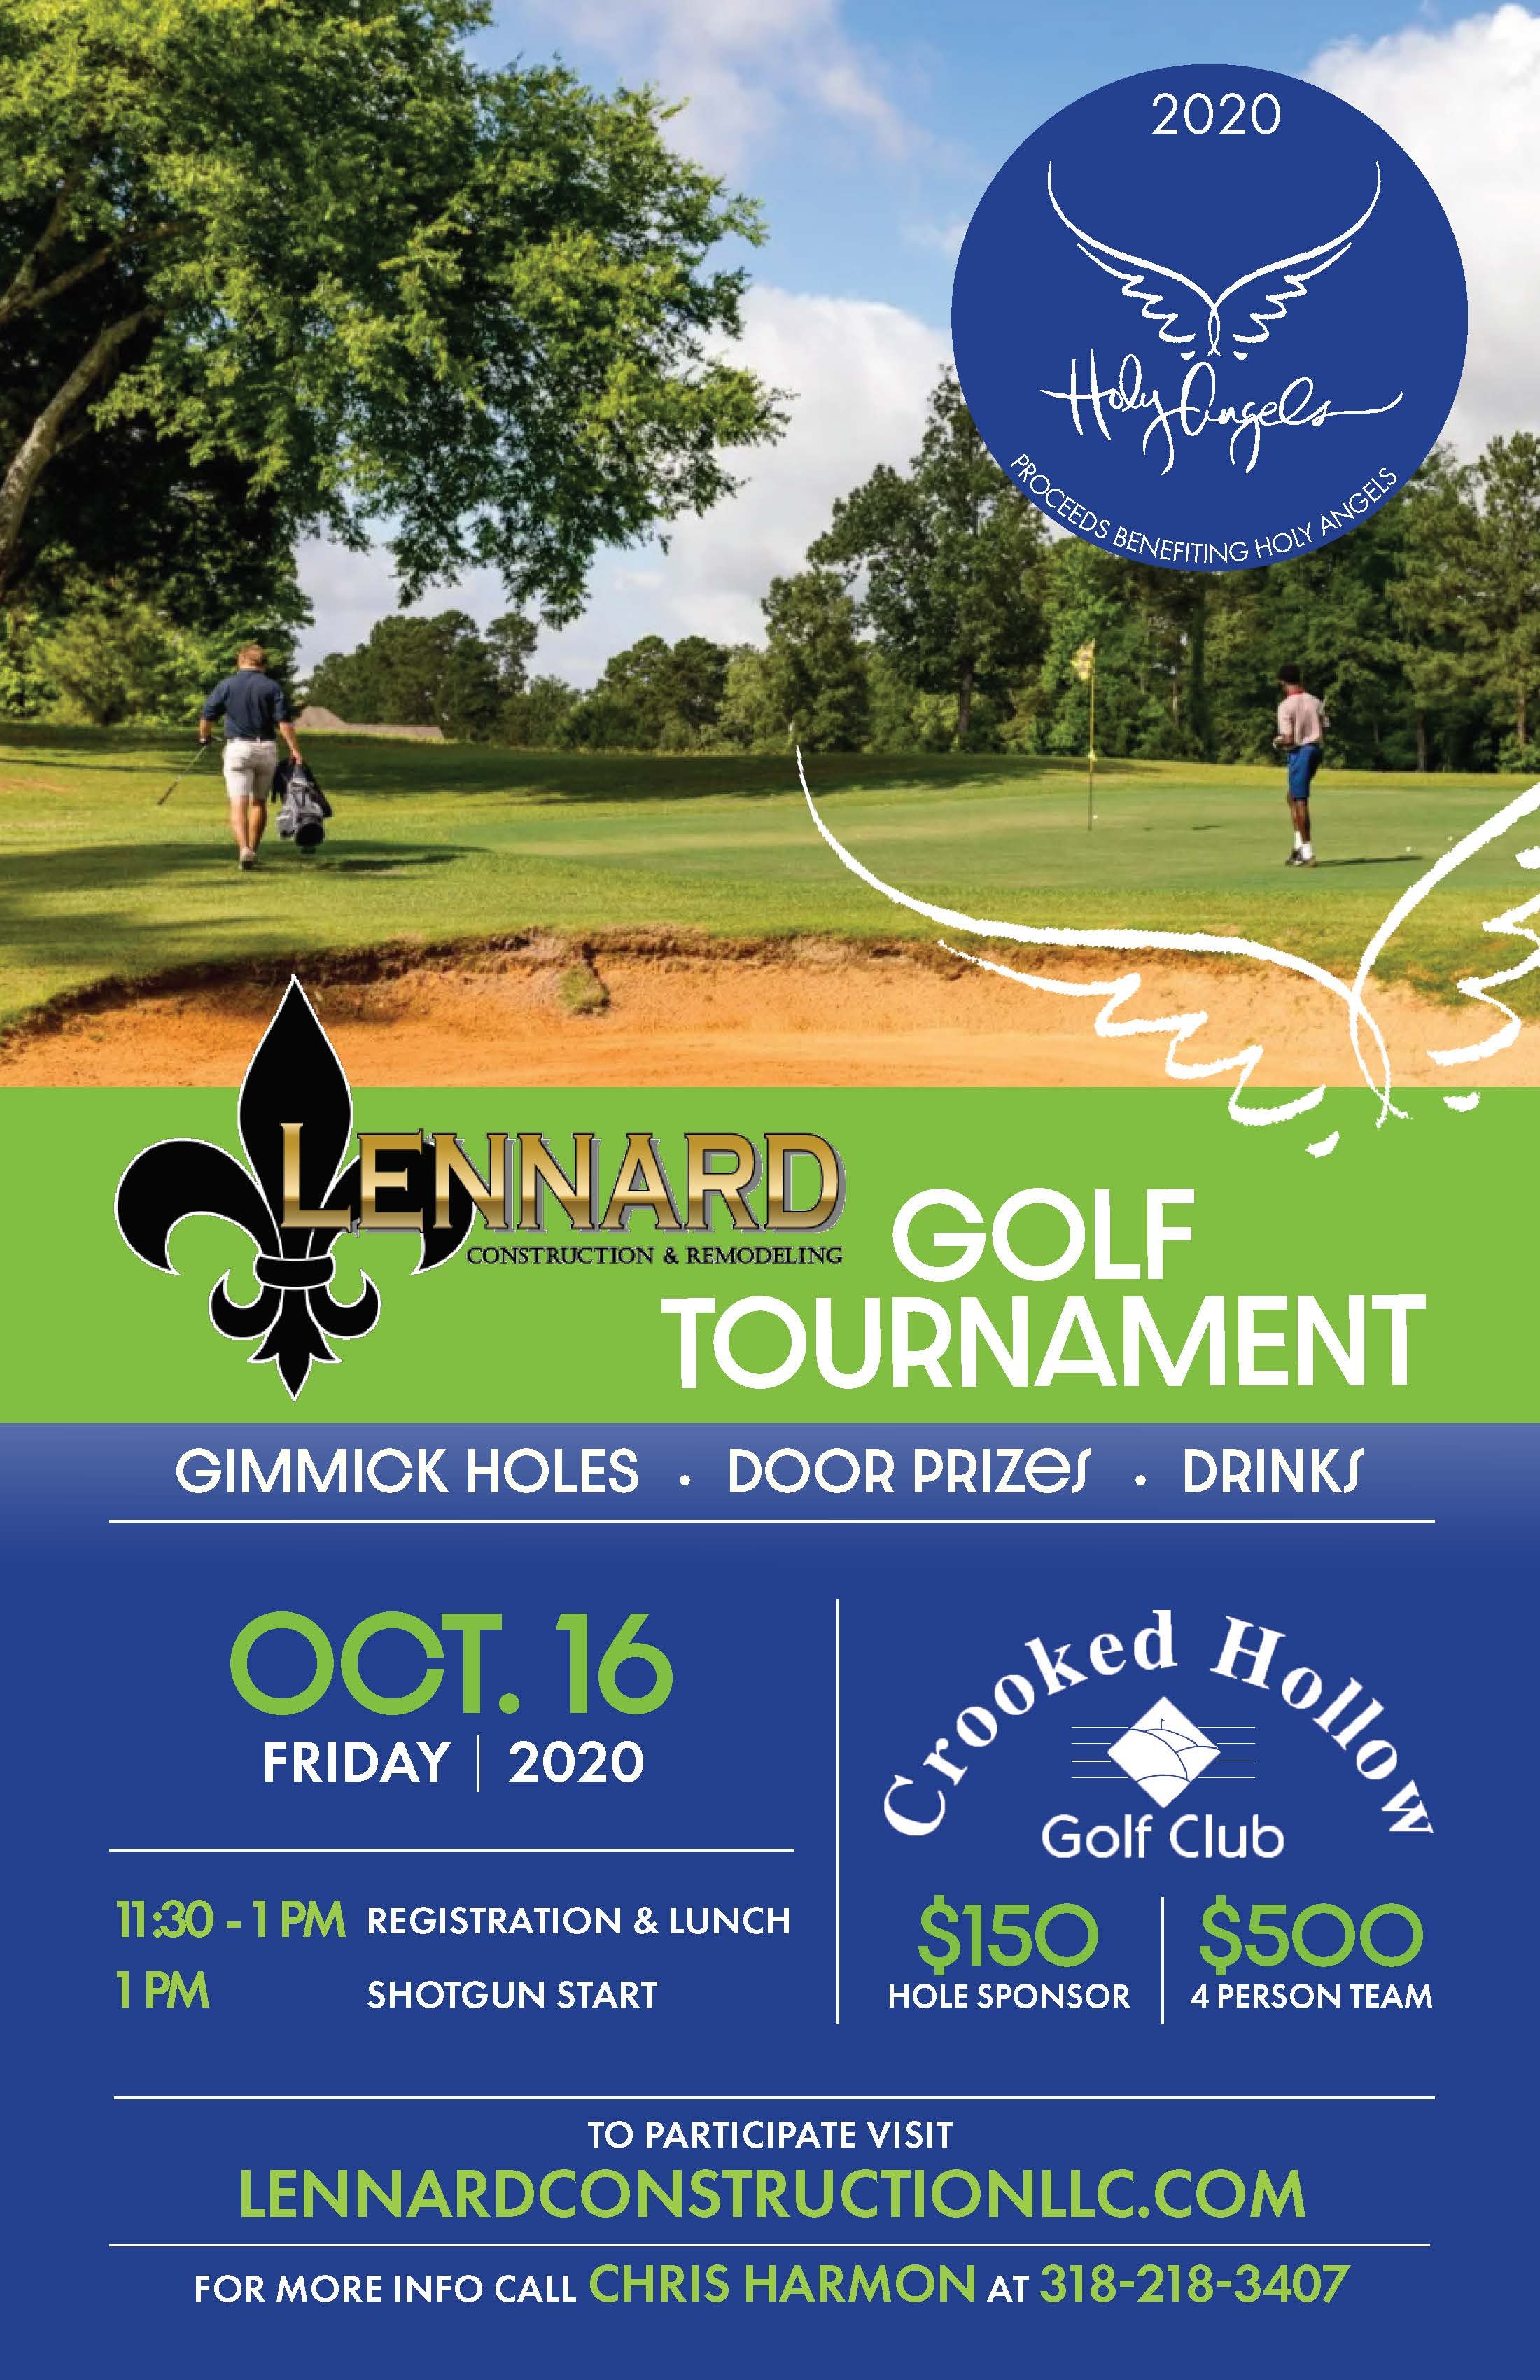 Lennard Golf Tournament @ Crooked Hollow Golf Course